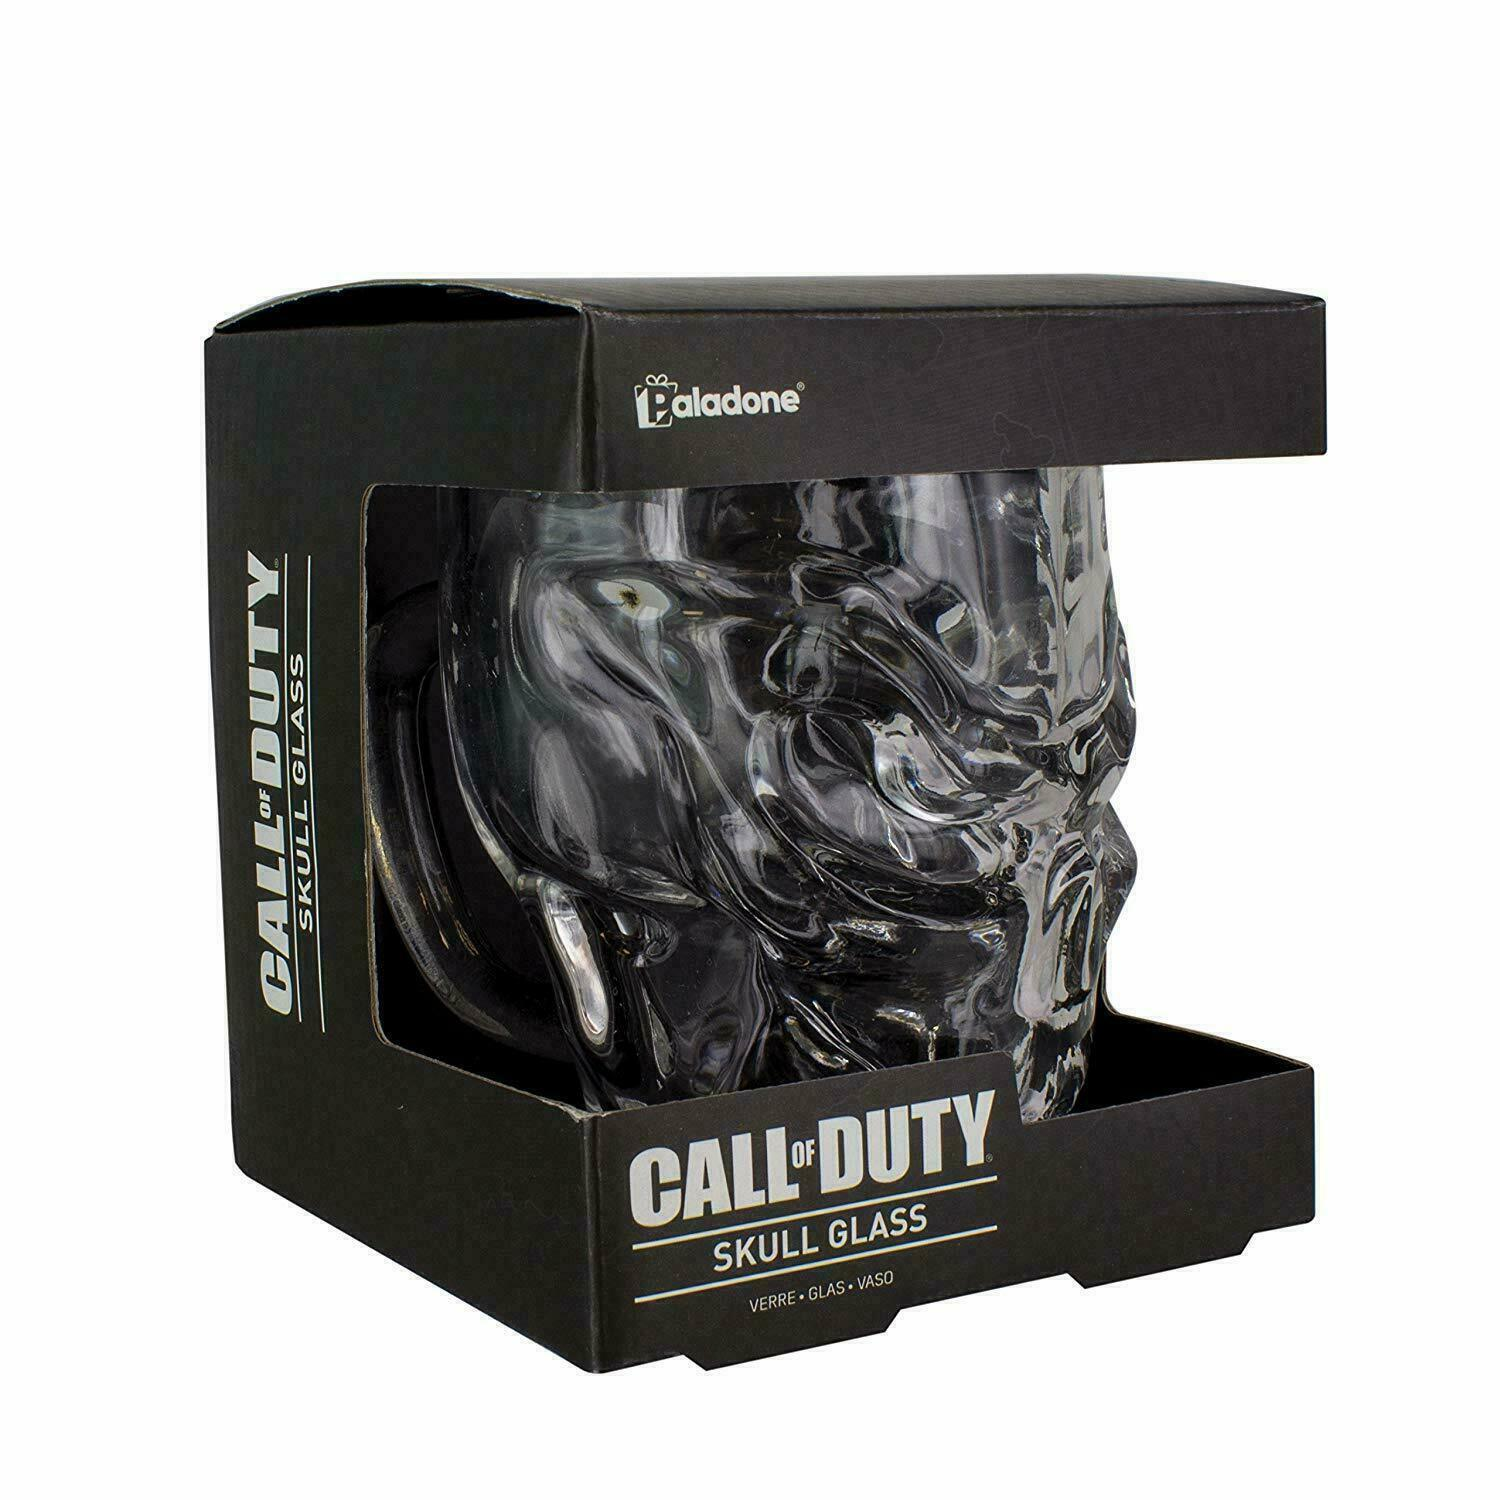 Call of Duty Skull Glass Whiskey Drink Handle COD Gamer Gift